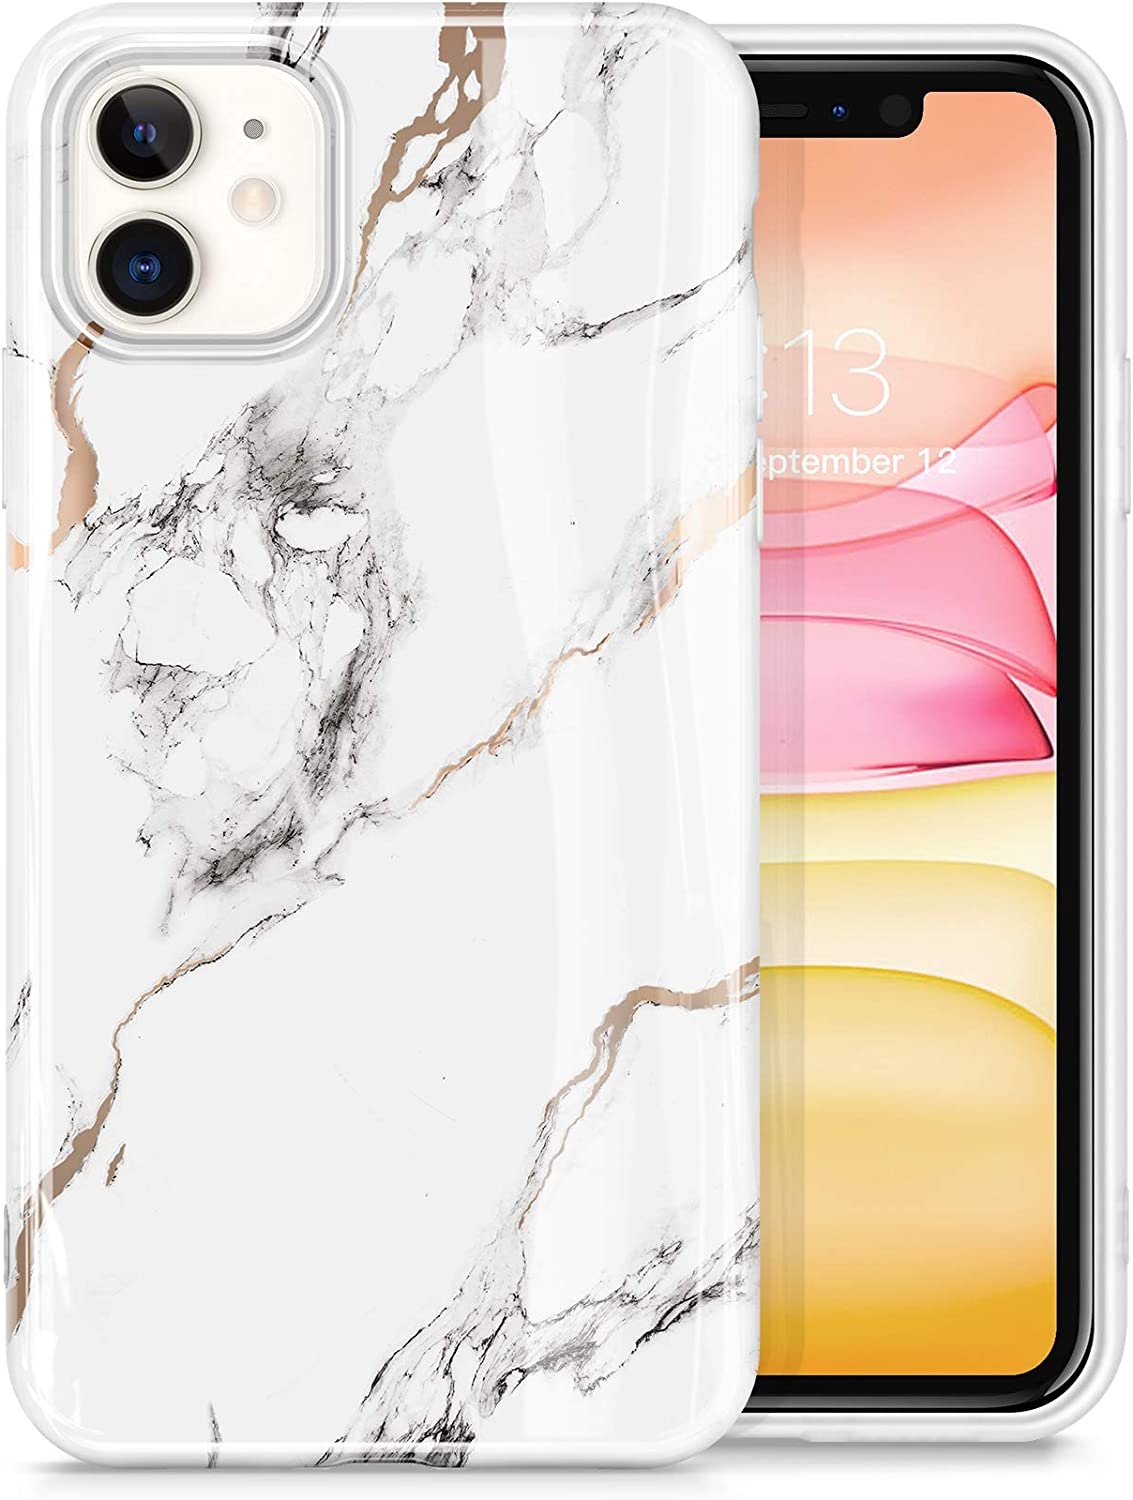 GVIEWIN Marble Compatible with iPhone 11 Case, Ultra Slim Thin Glossy Soft TPU Rubber Gel Phone Case Cover Compatible with iPhone 11 6.1 Inch 2019 (White/Gold)